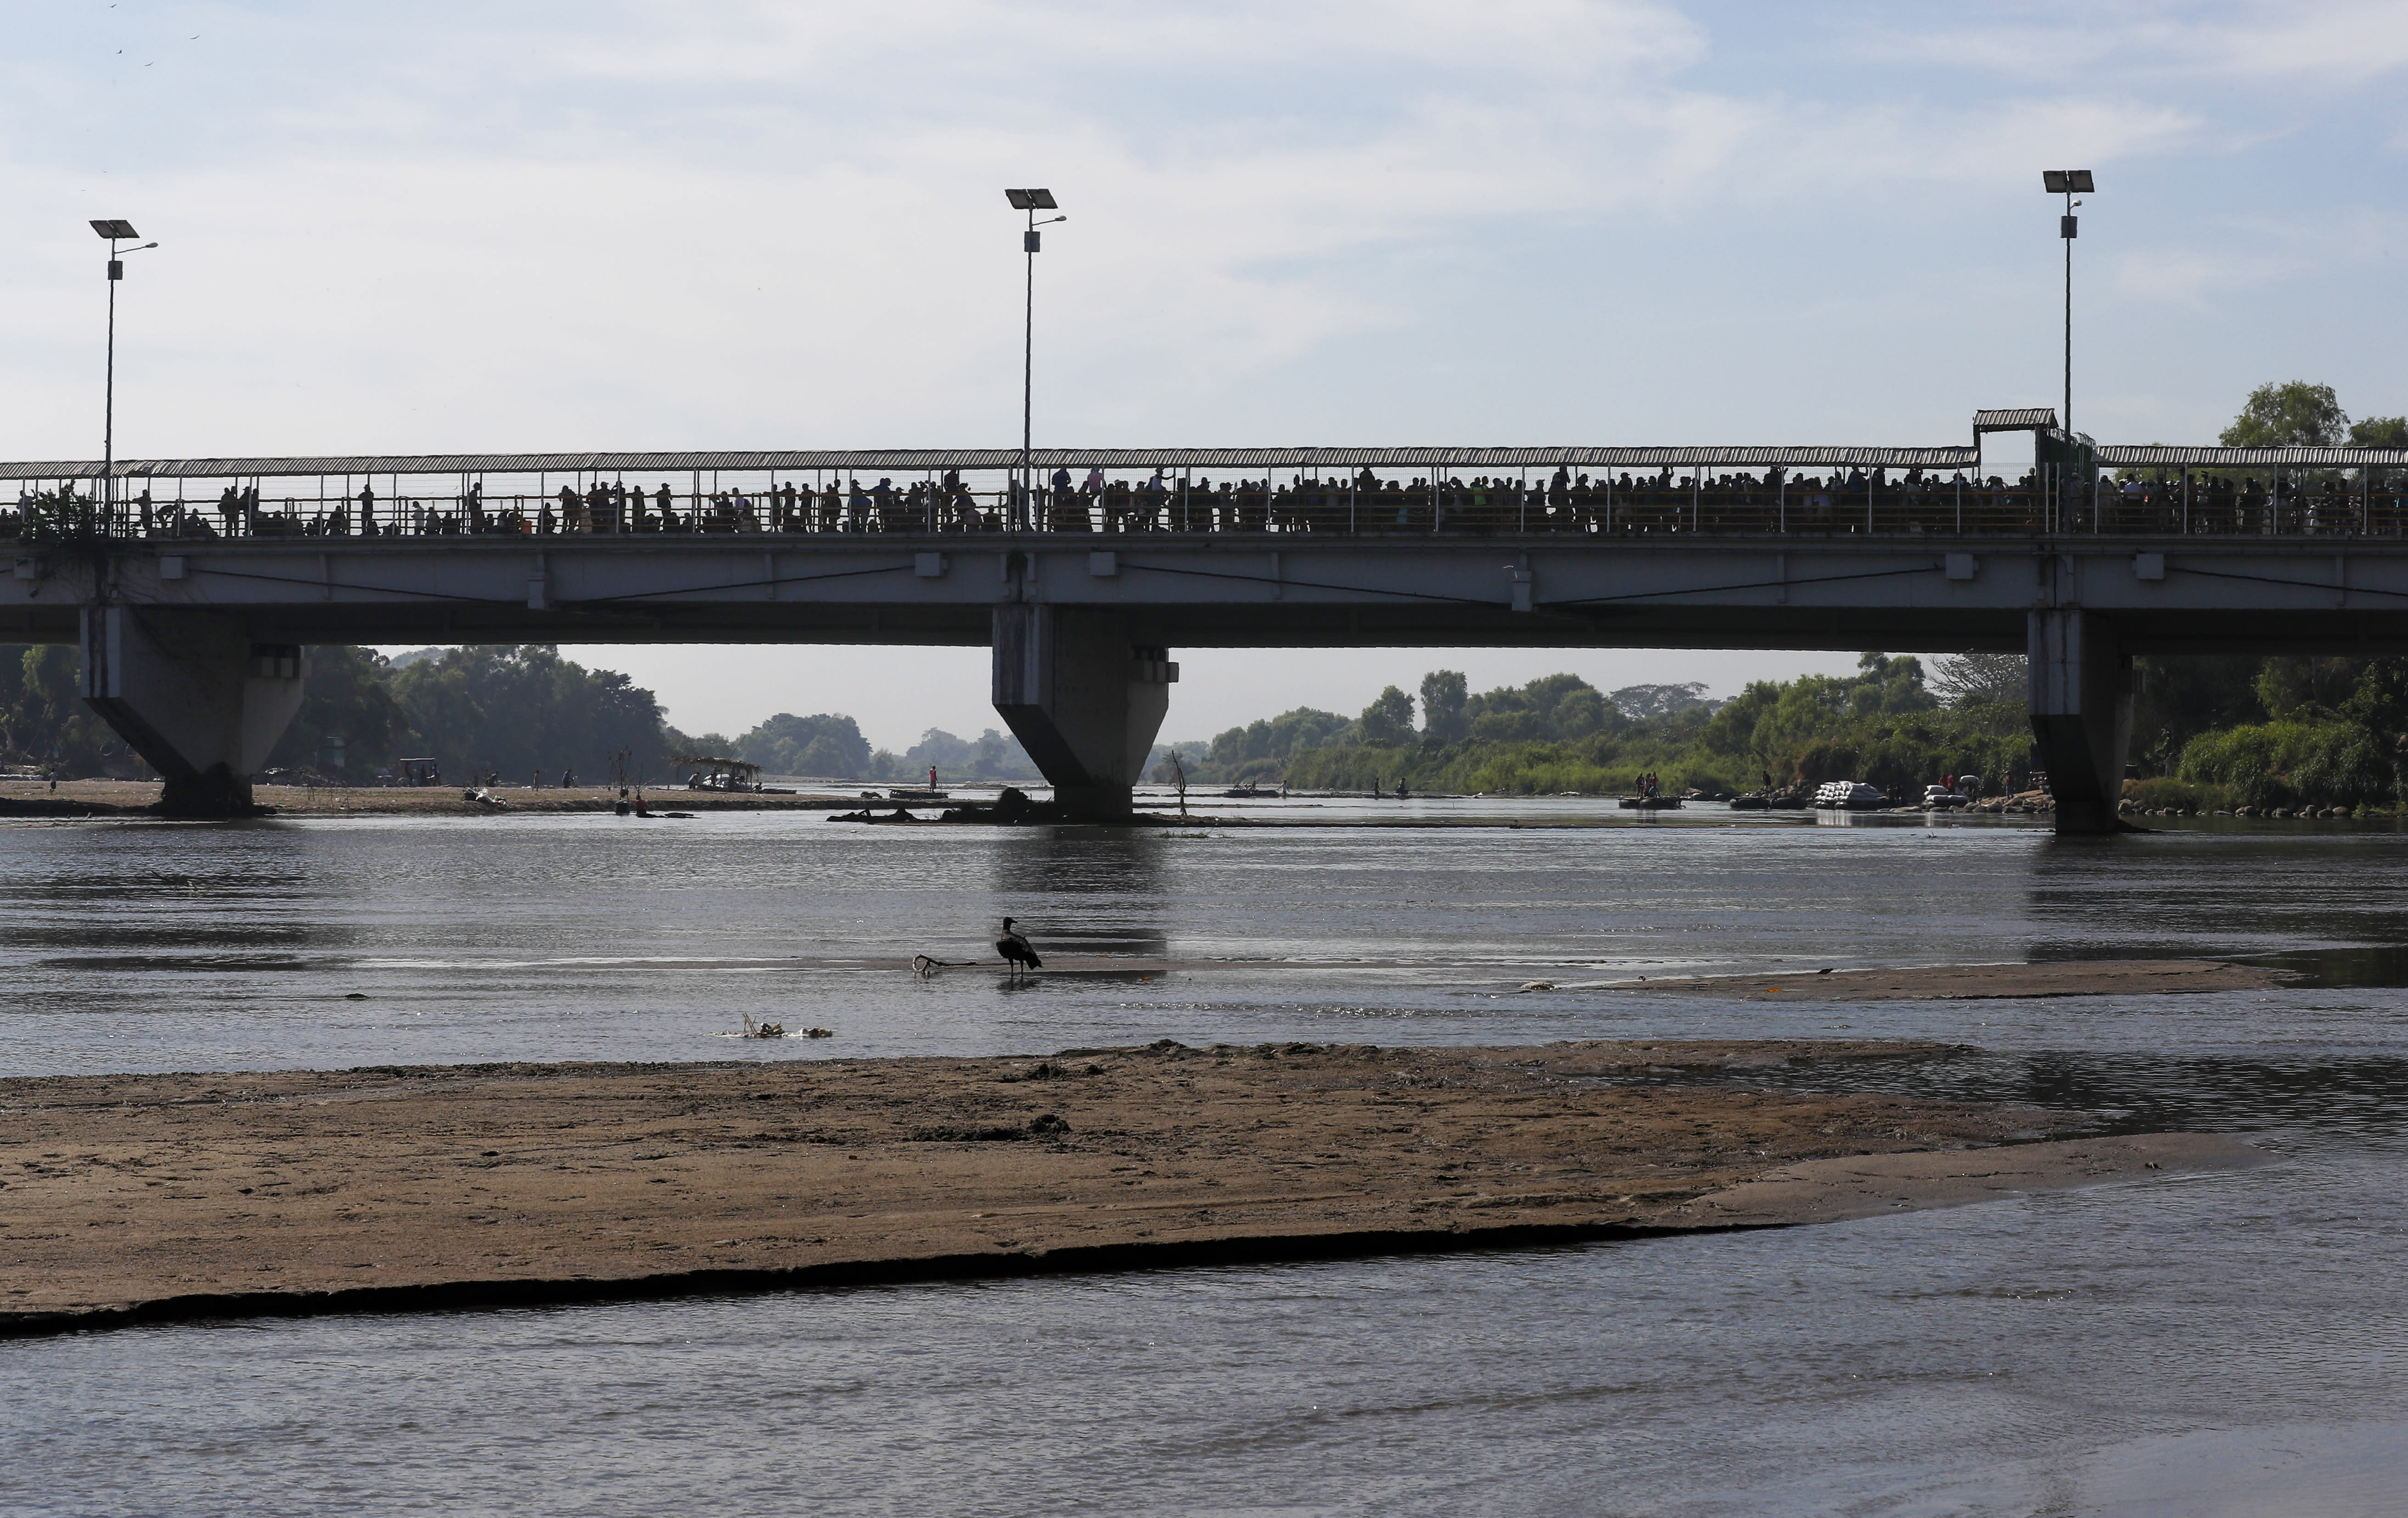 Migrants crowd the the bridge spanning the Suchiate River on the border between Guatemala and Mexico in Ciudad Hidalgo, Saturday, Jan. 18, 2020. More than a thousand Central American migrants surged onto the bridge as Mexican National Guardsmen attempted to impede their journey north. (AP Photo/Marco Ugarte)